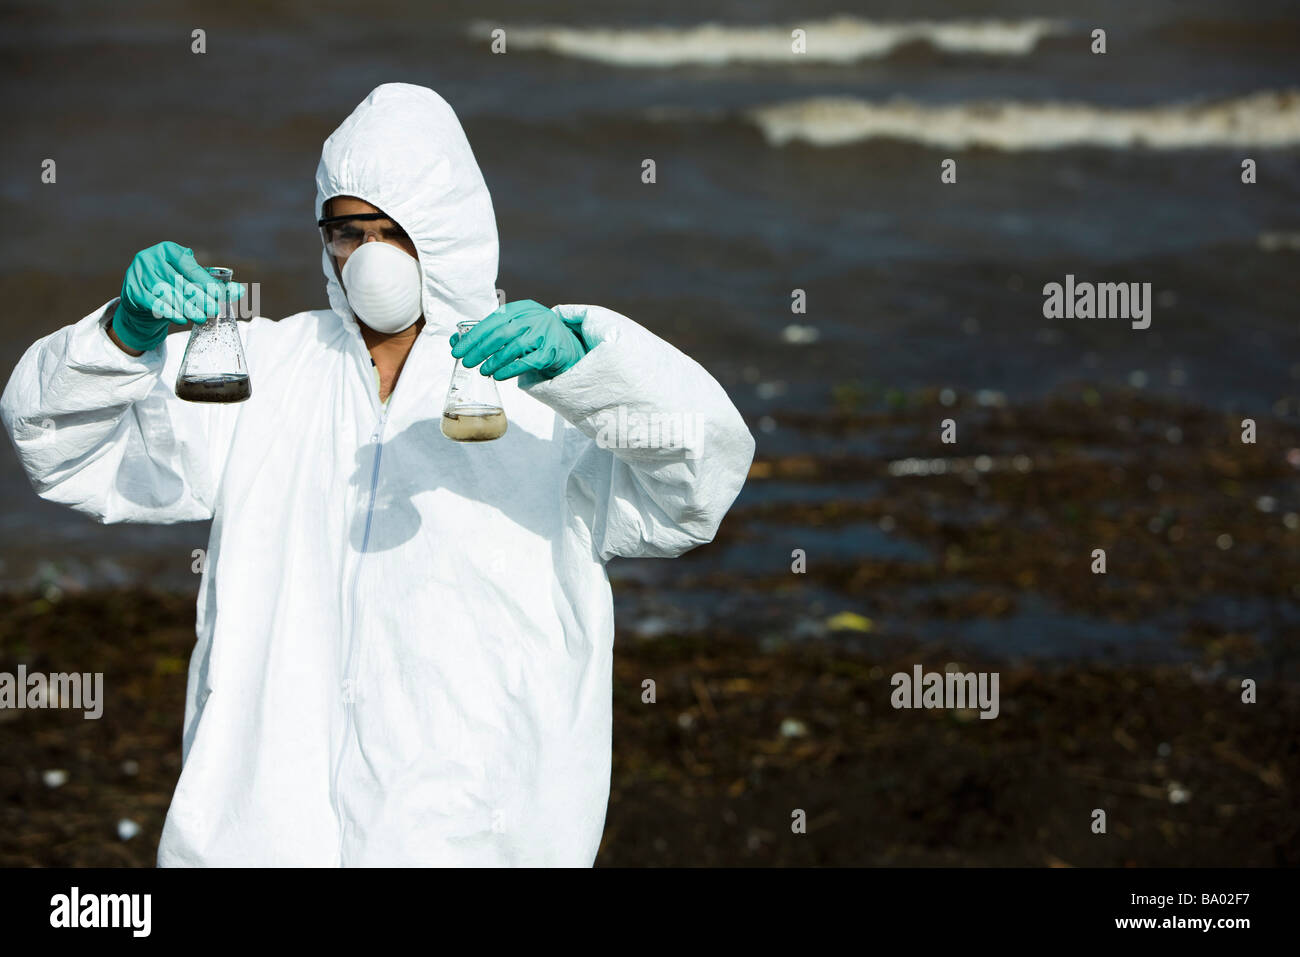 Person in protective suit testing polluted water - Stock Image